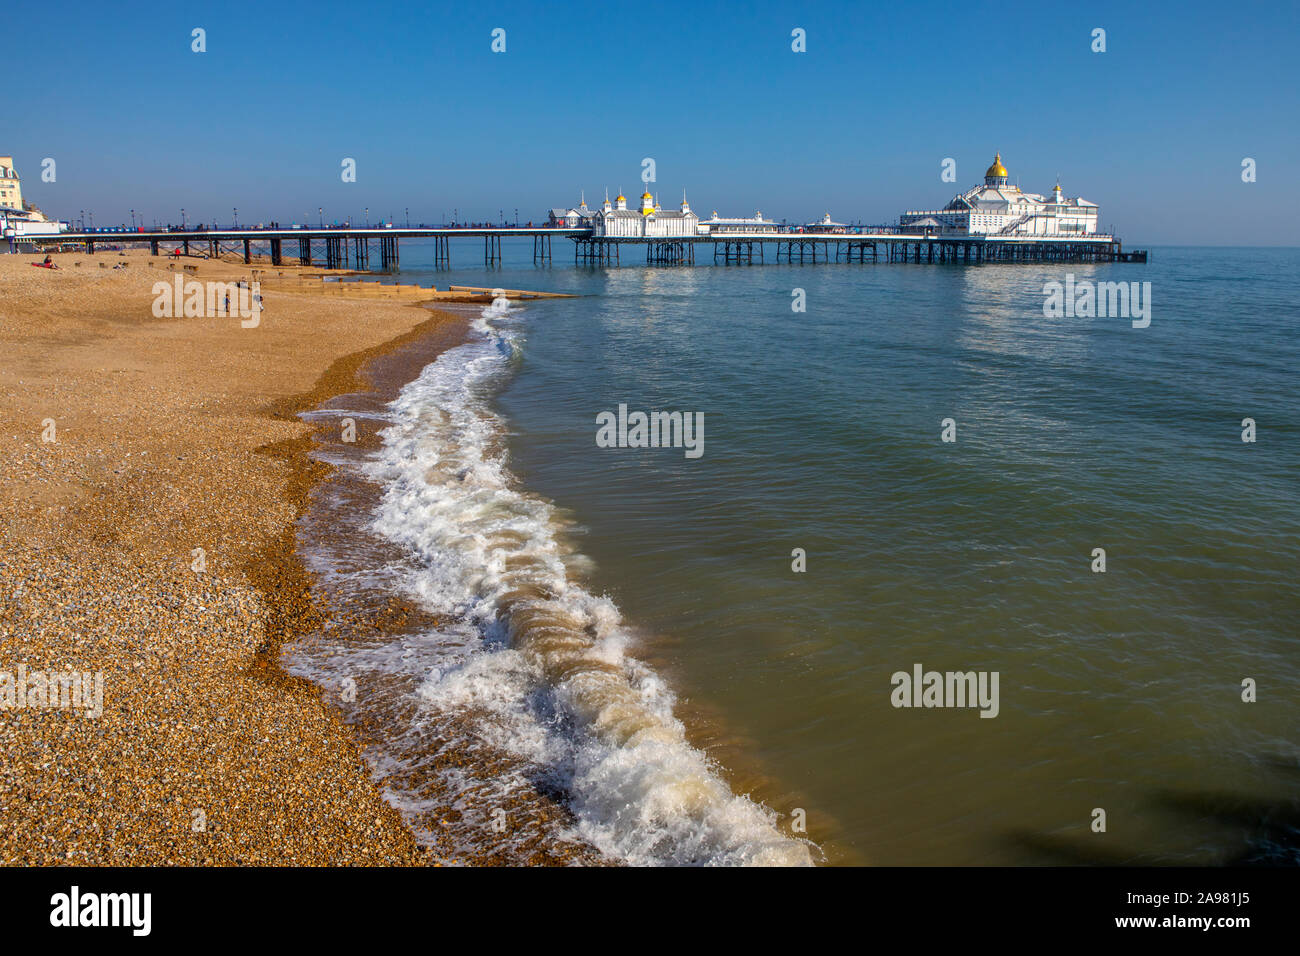 A view of the historic Eastbourne Pier in Eastbourne, East Sussex, UK. Stock Photo